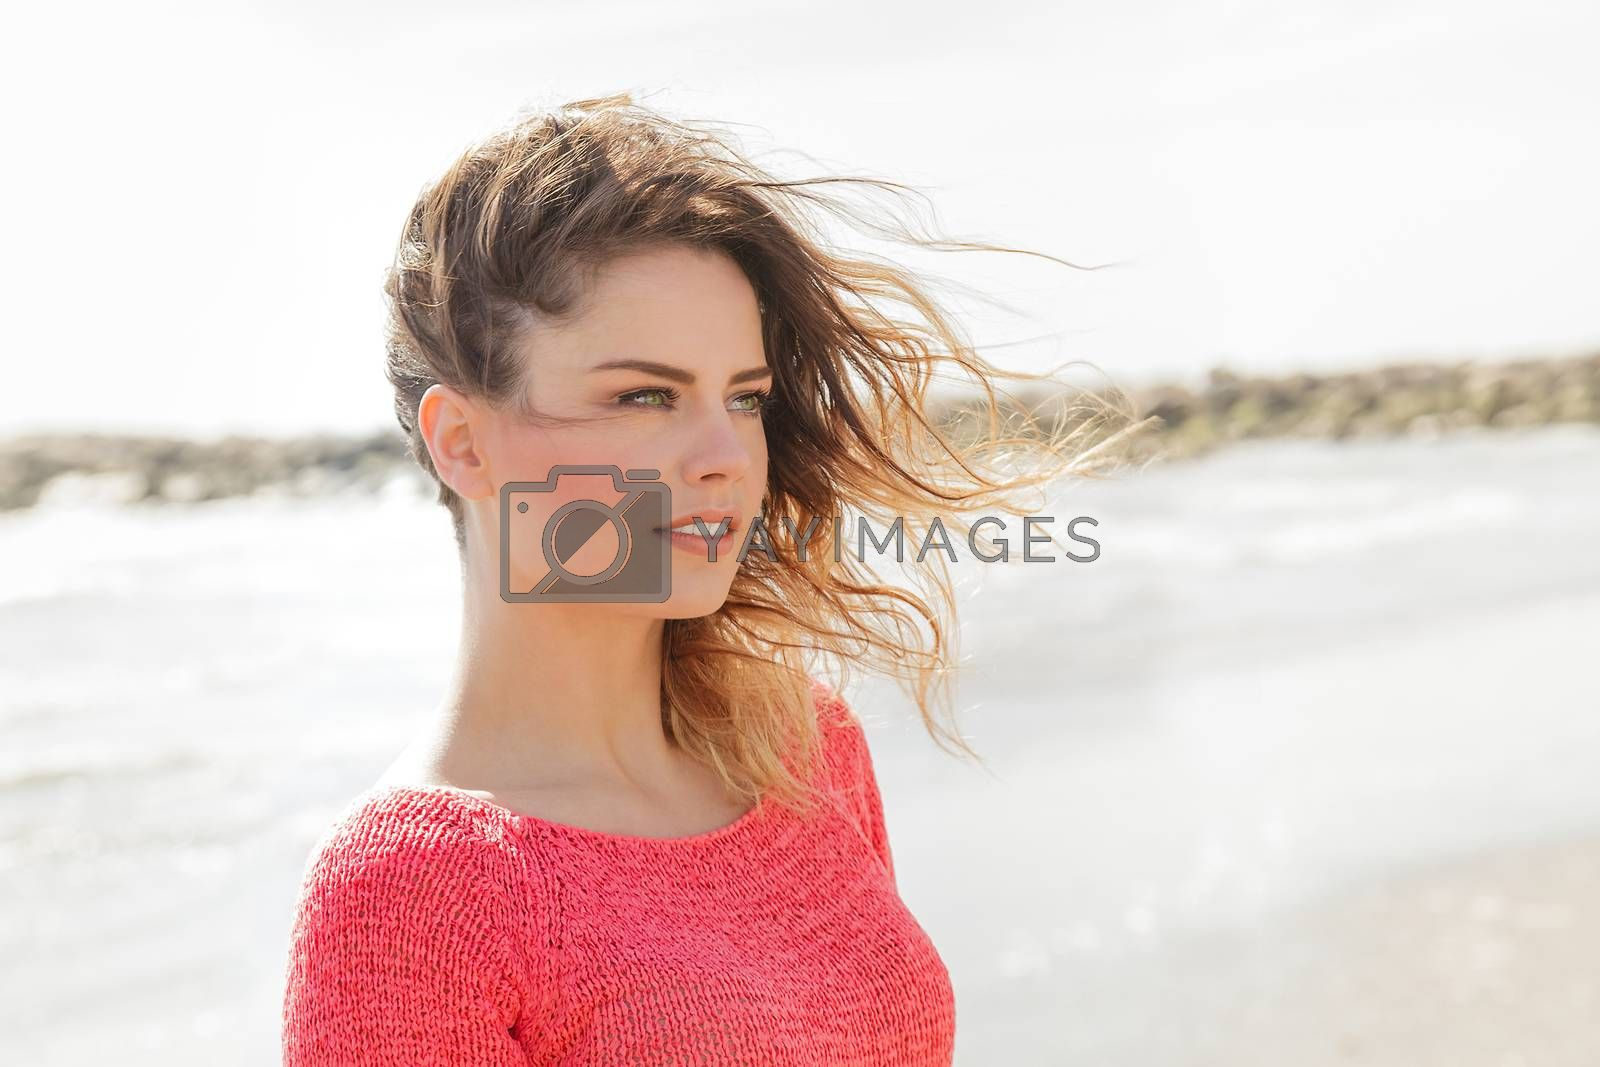 Royalty free image of Beautiful young girl looking aside on the beach by alessandroguerriero